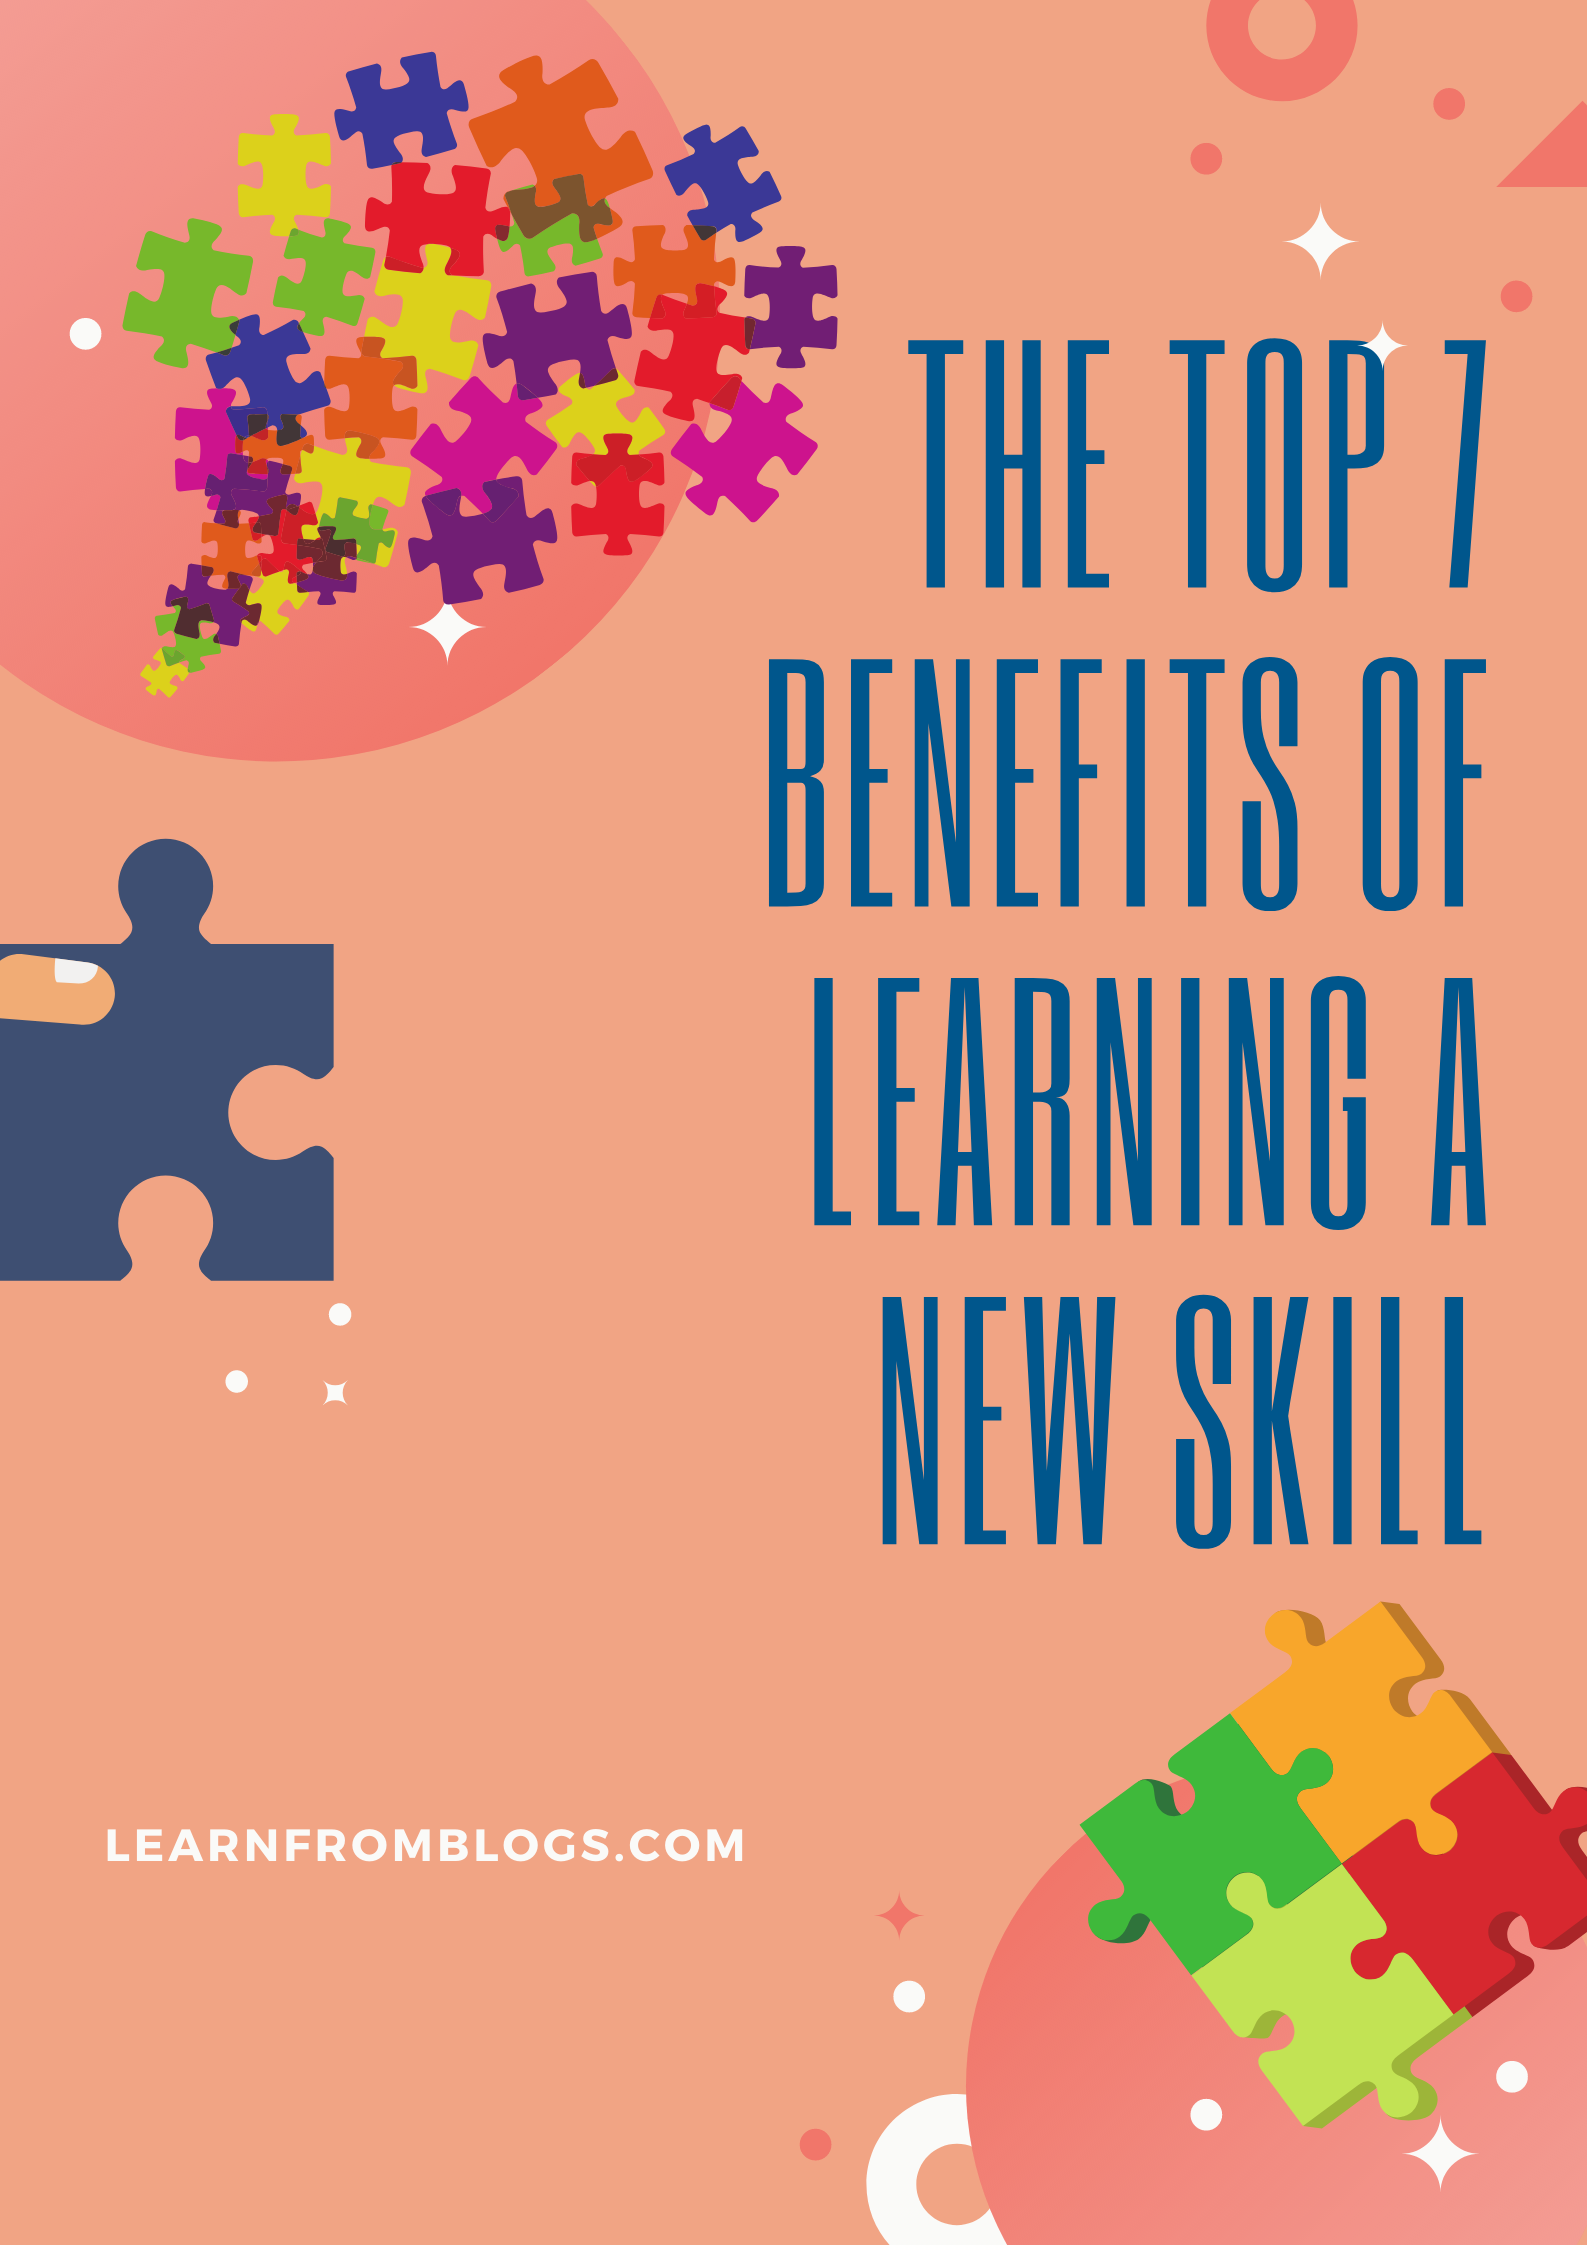 The Top 7 Benefits Of Learning A New Skill.png